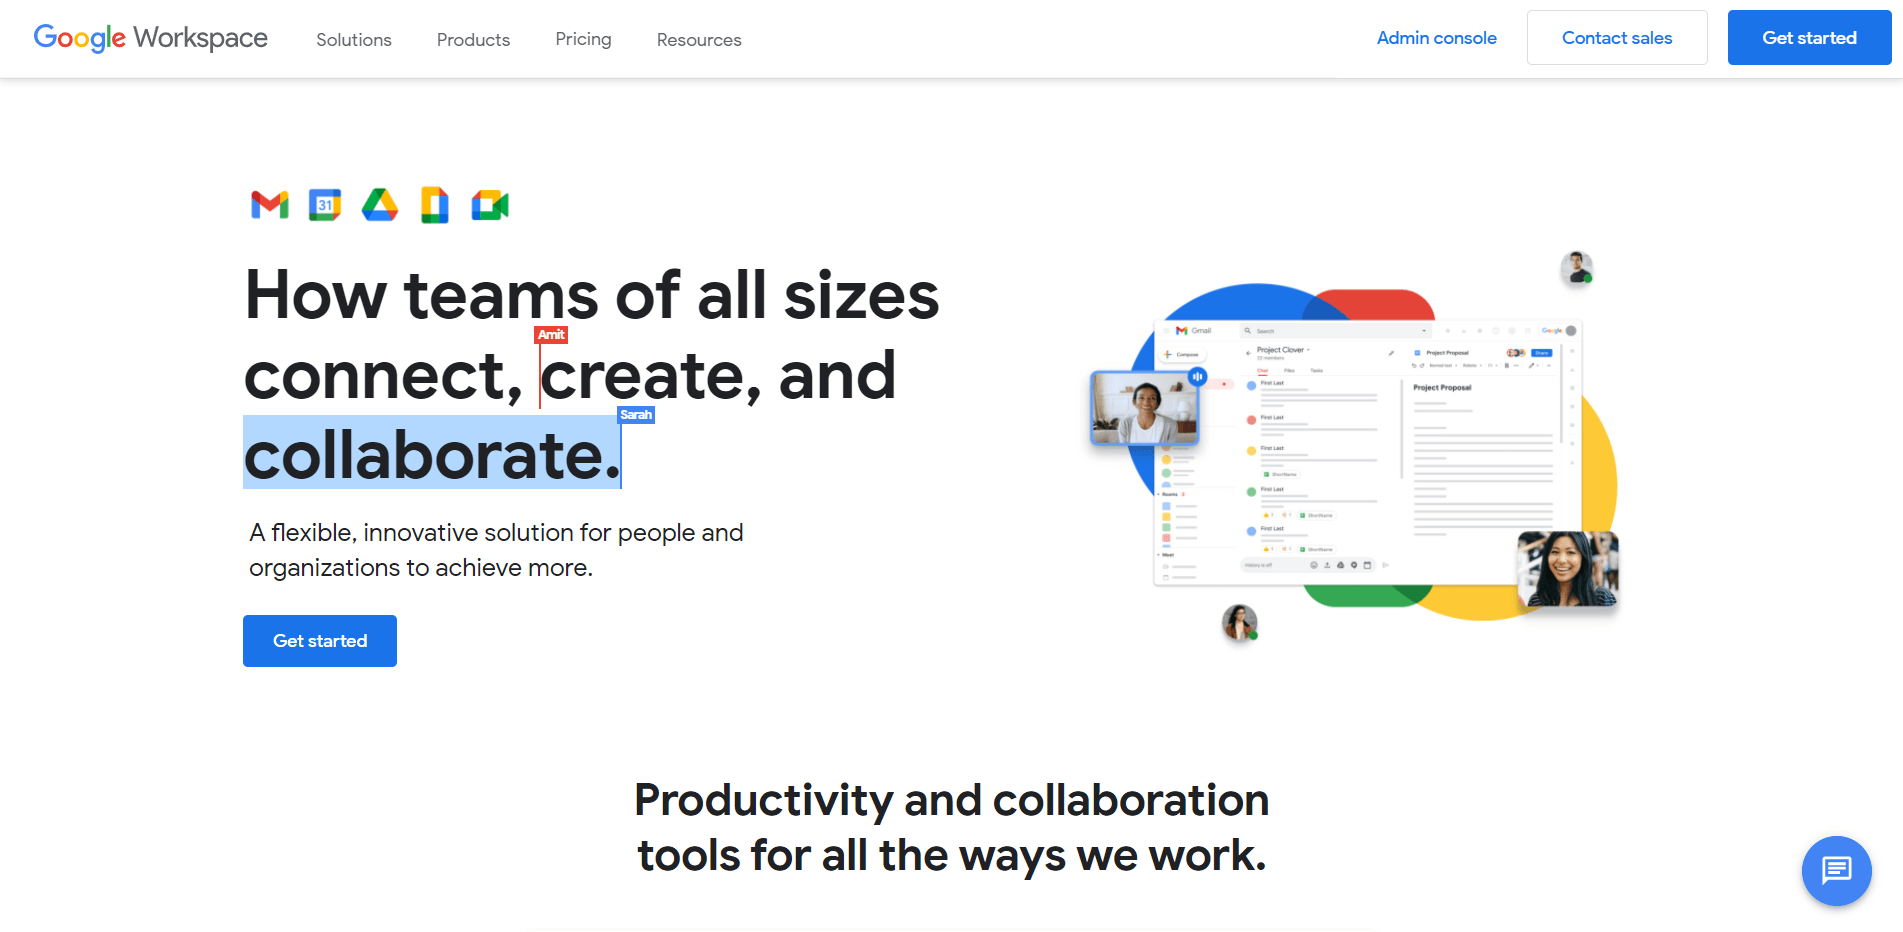 Google Workspace, one of the best business cloud storage options available.